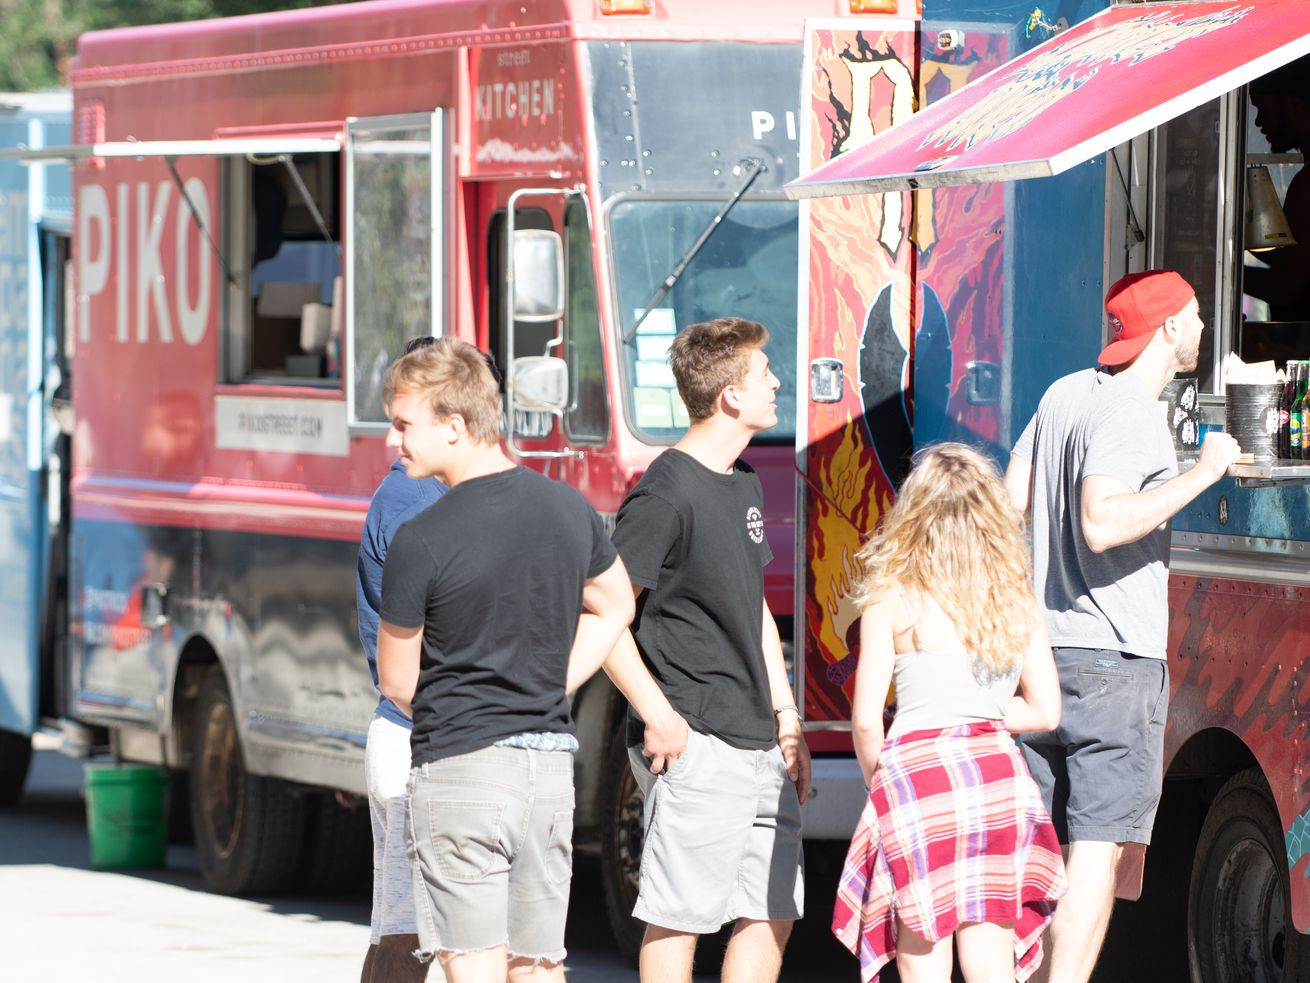 People in line for food at a food truck at West Fest in the West Town neighborhood of Chicago, IL on July 6, 2018.